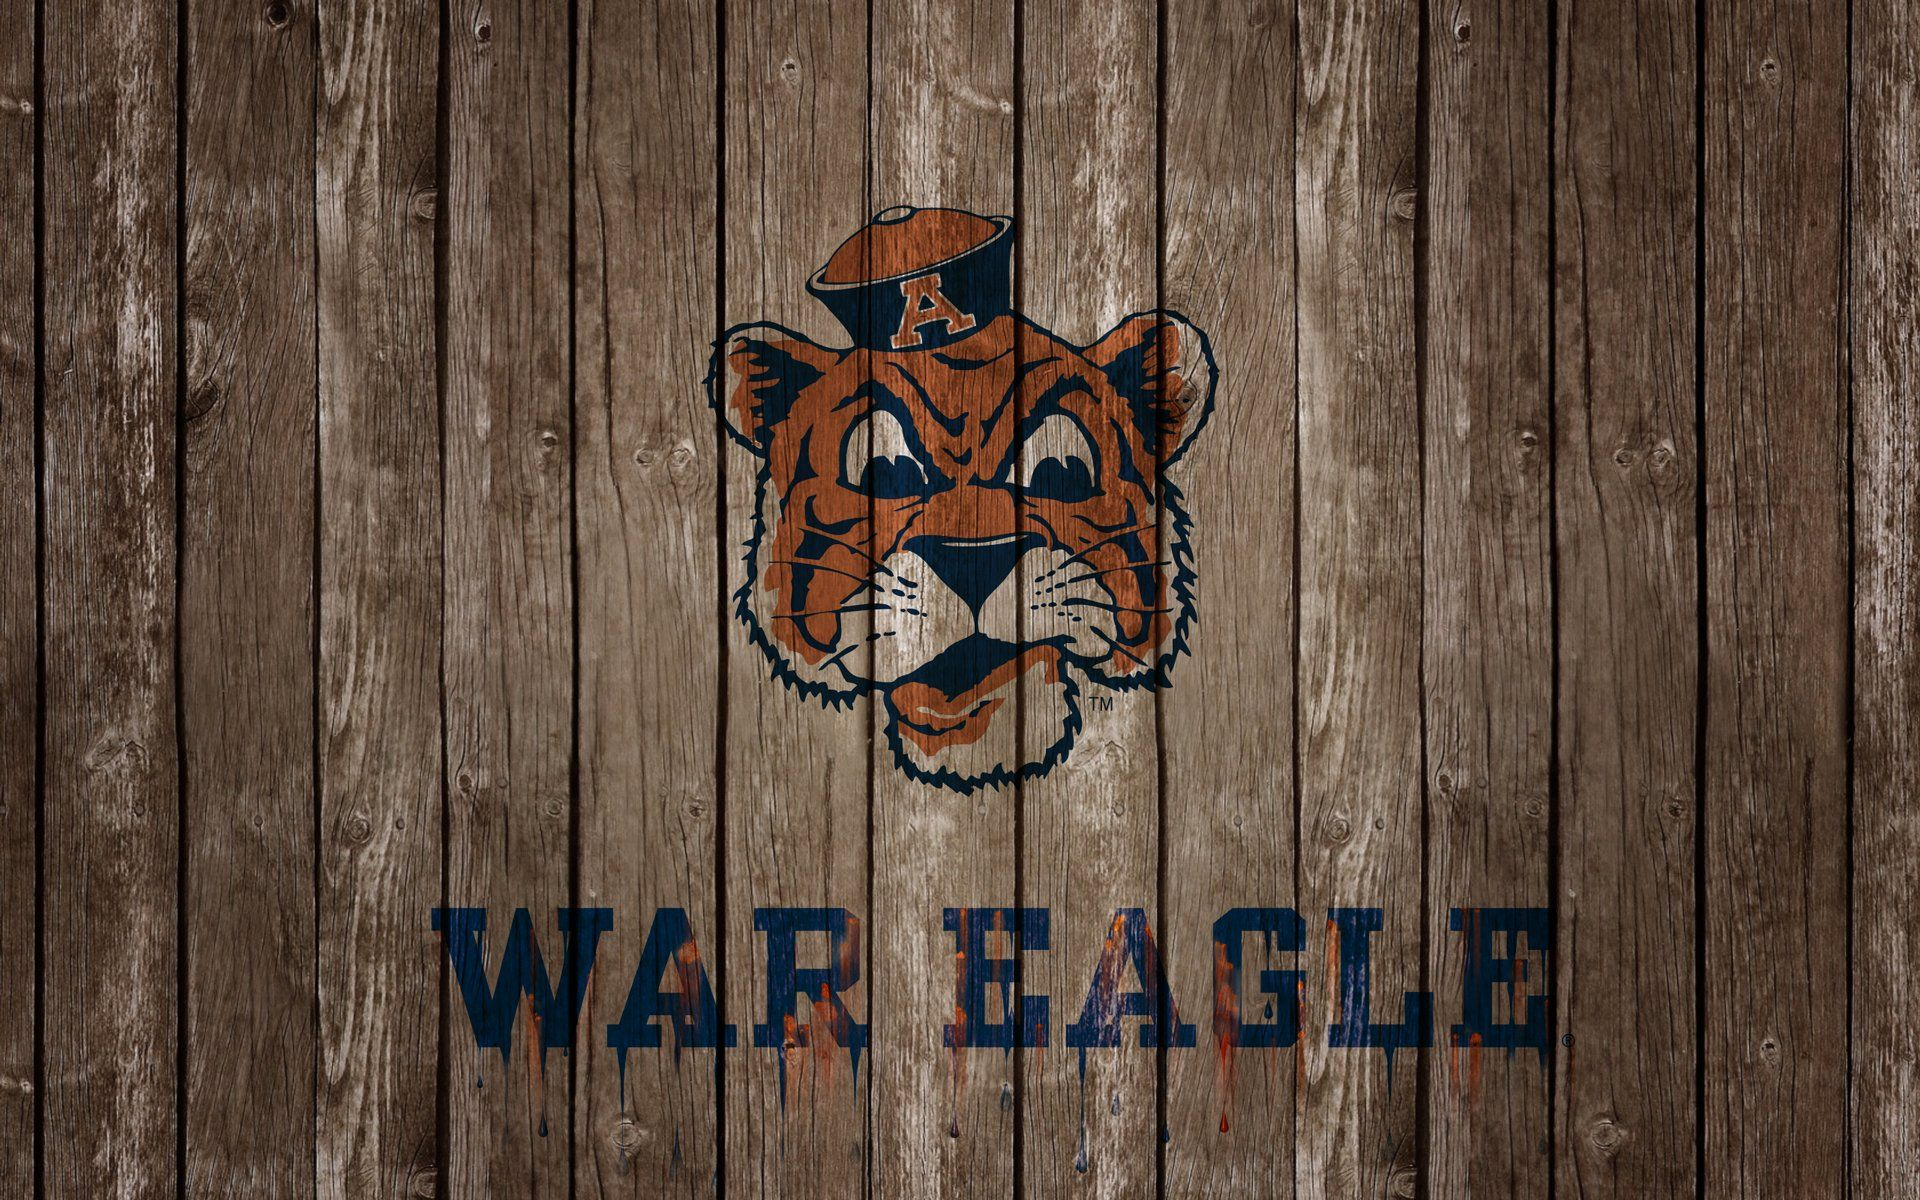 Auburn Desktop Wallpaper 1920x1200 Dark Brown Hairs Auburn Tigers Auburn Tigers Football Football Wallpaper